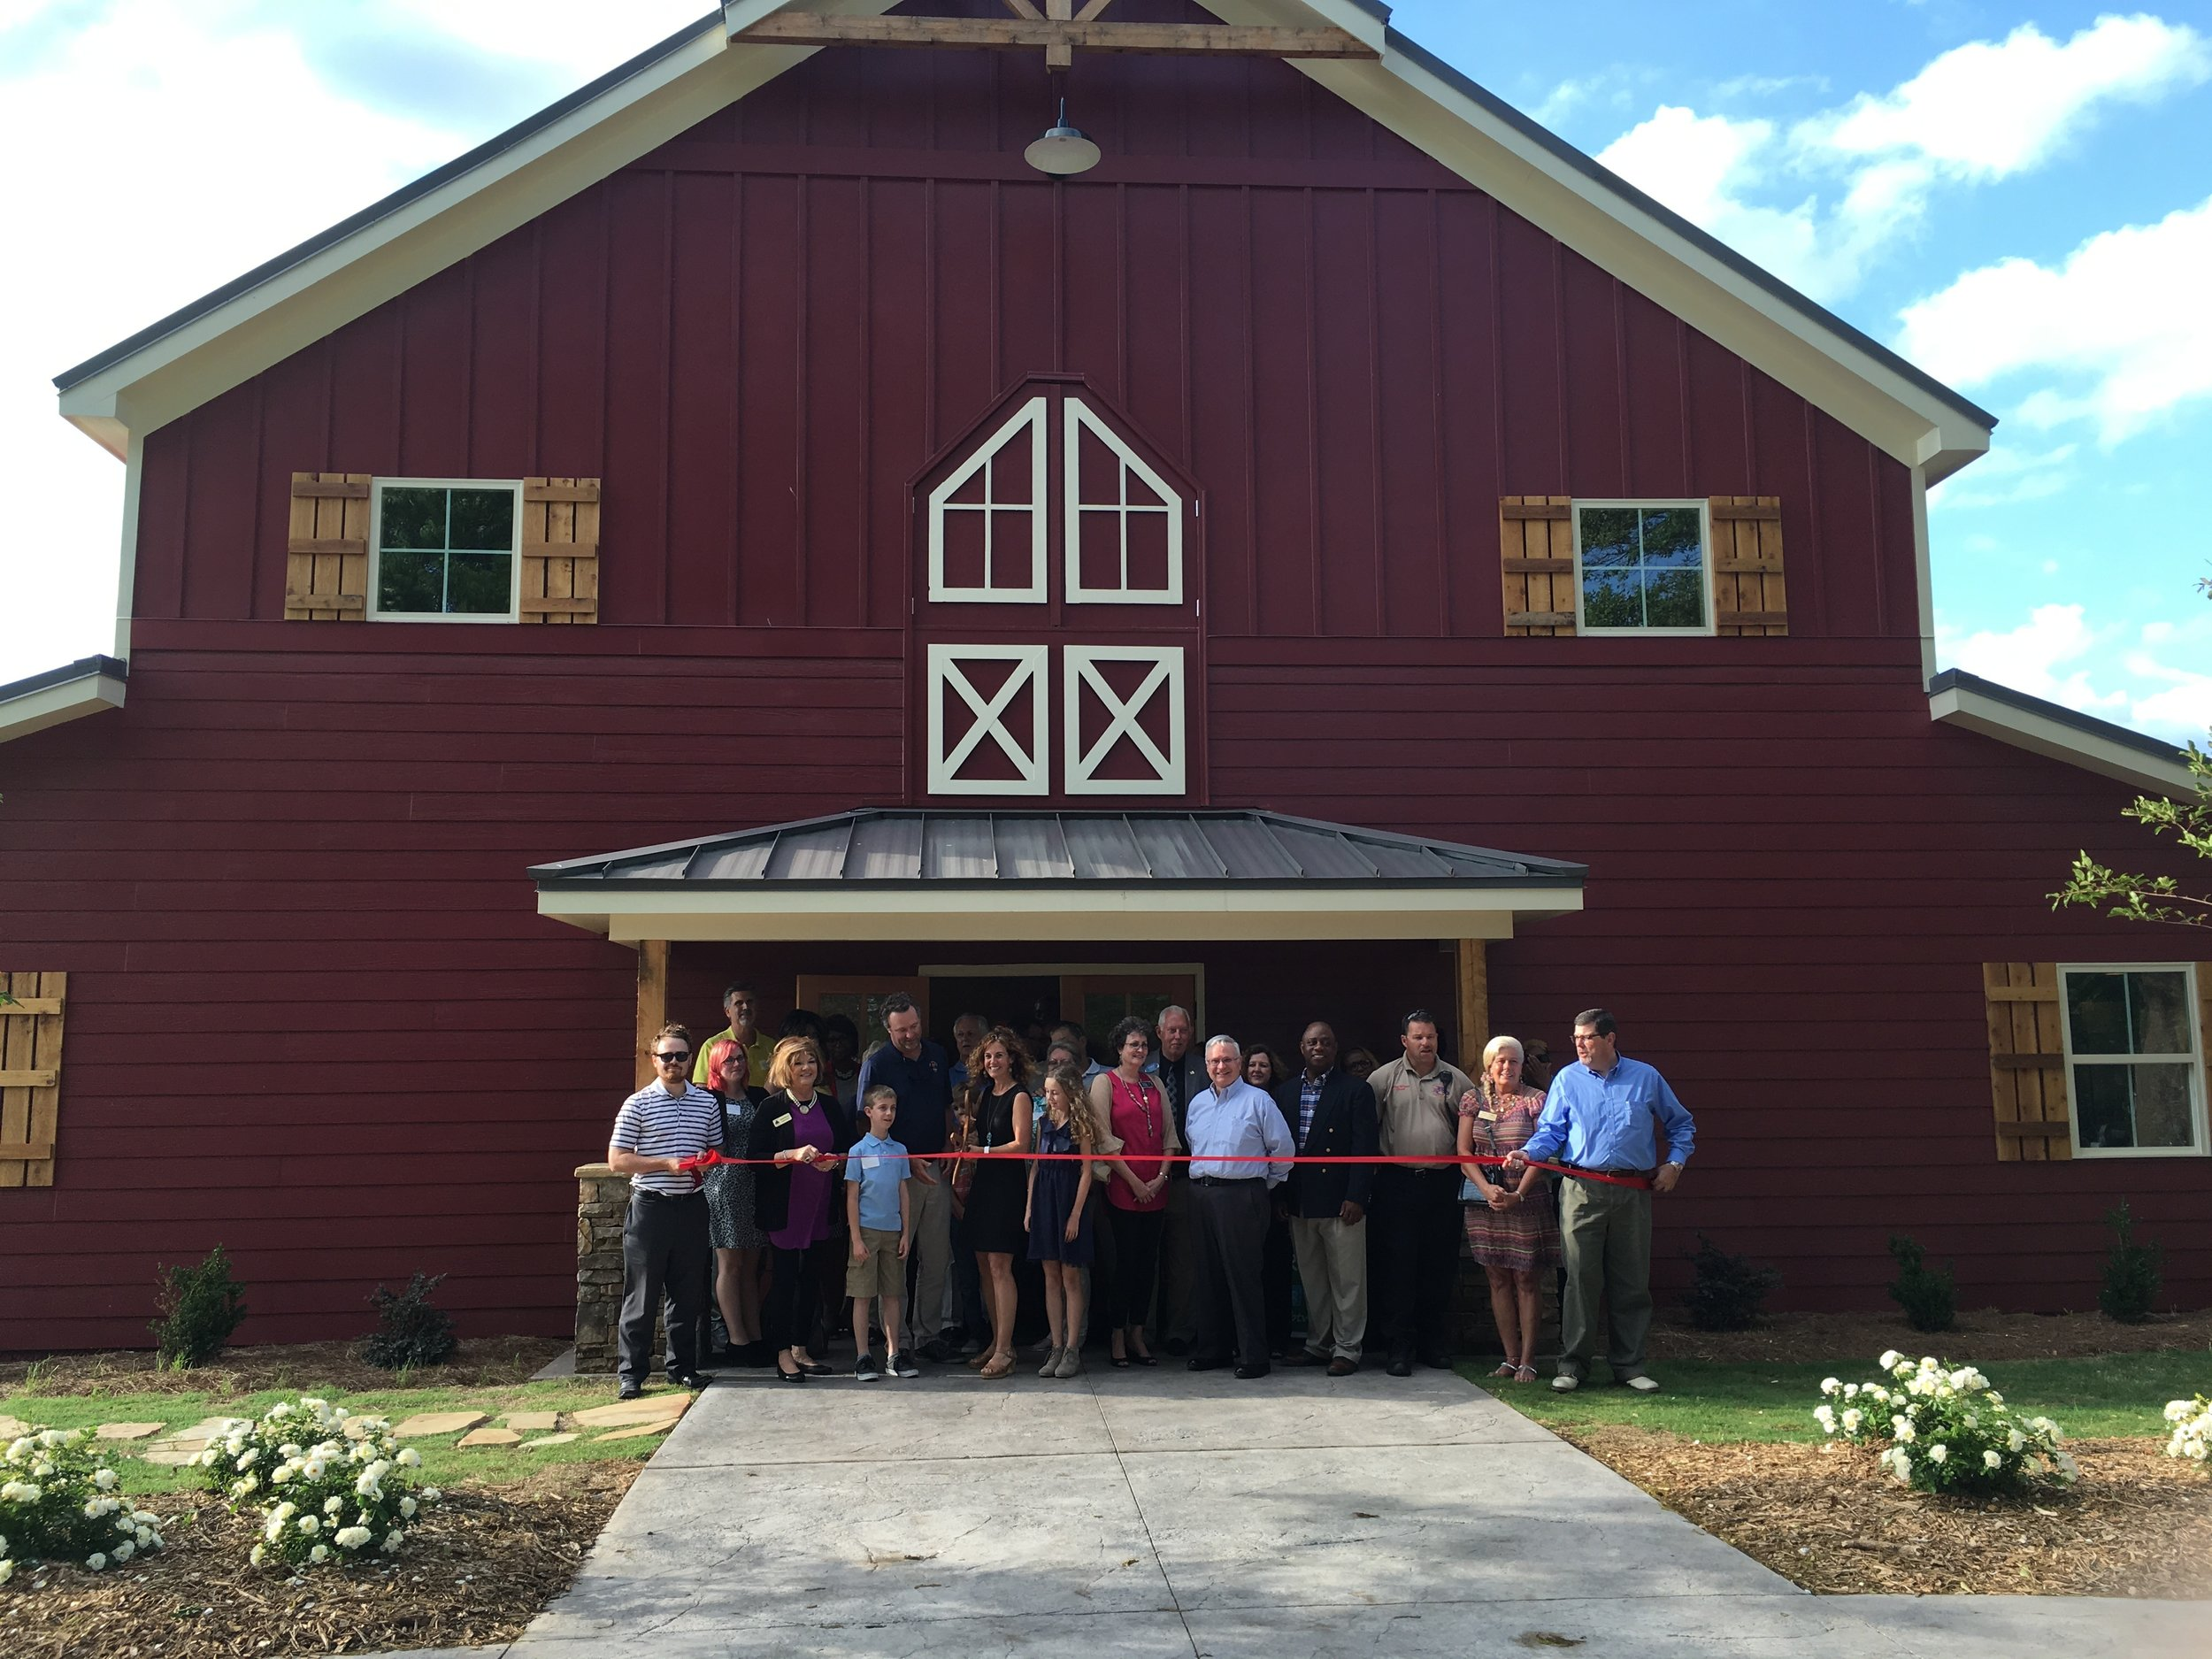 This was our ribbon cutting ceremony surrounded by family, friends and community! Such a special moment!